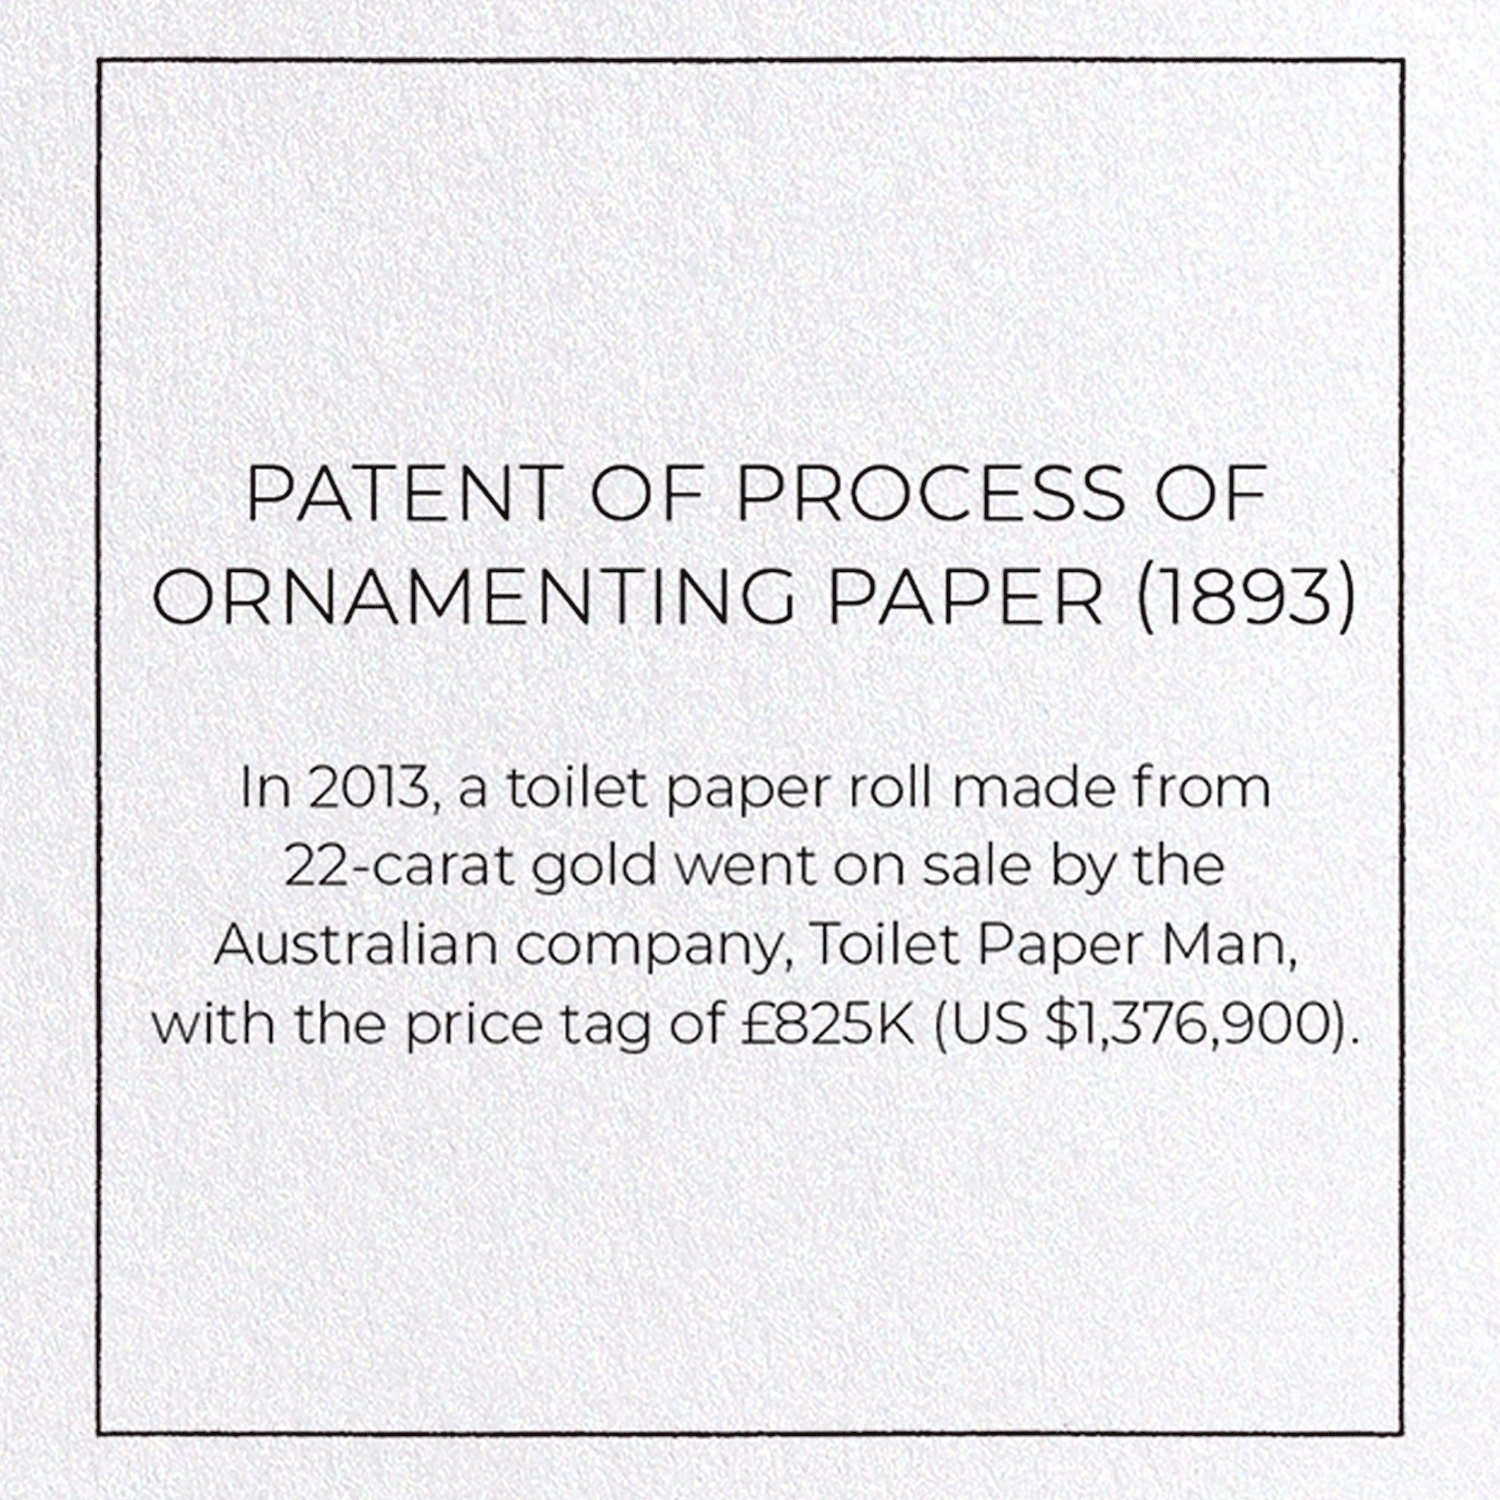 PATENT OF PROCESS OF ORNAMENTING PAPER (1893)